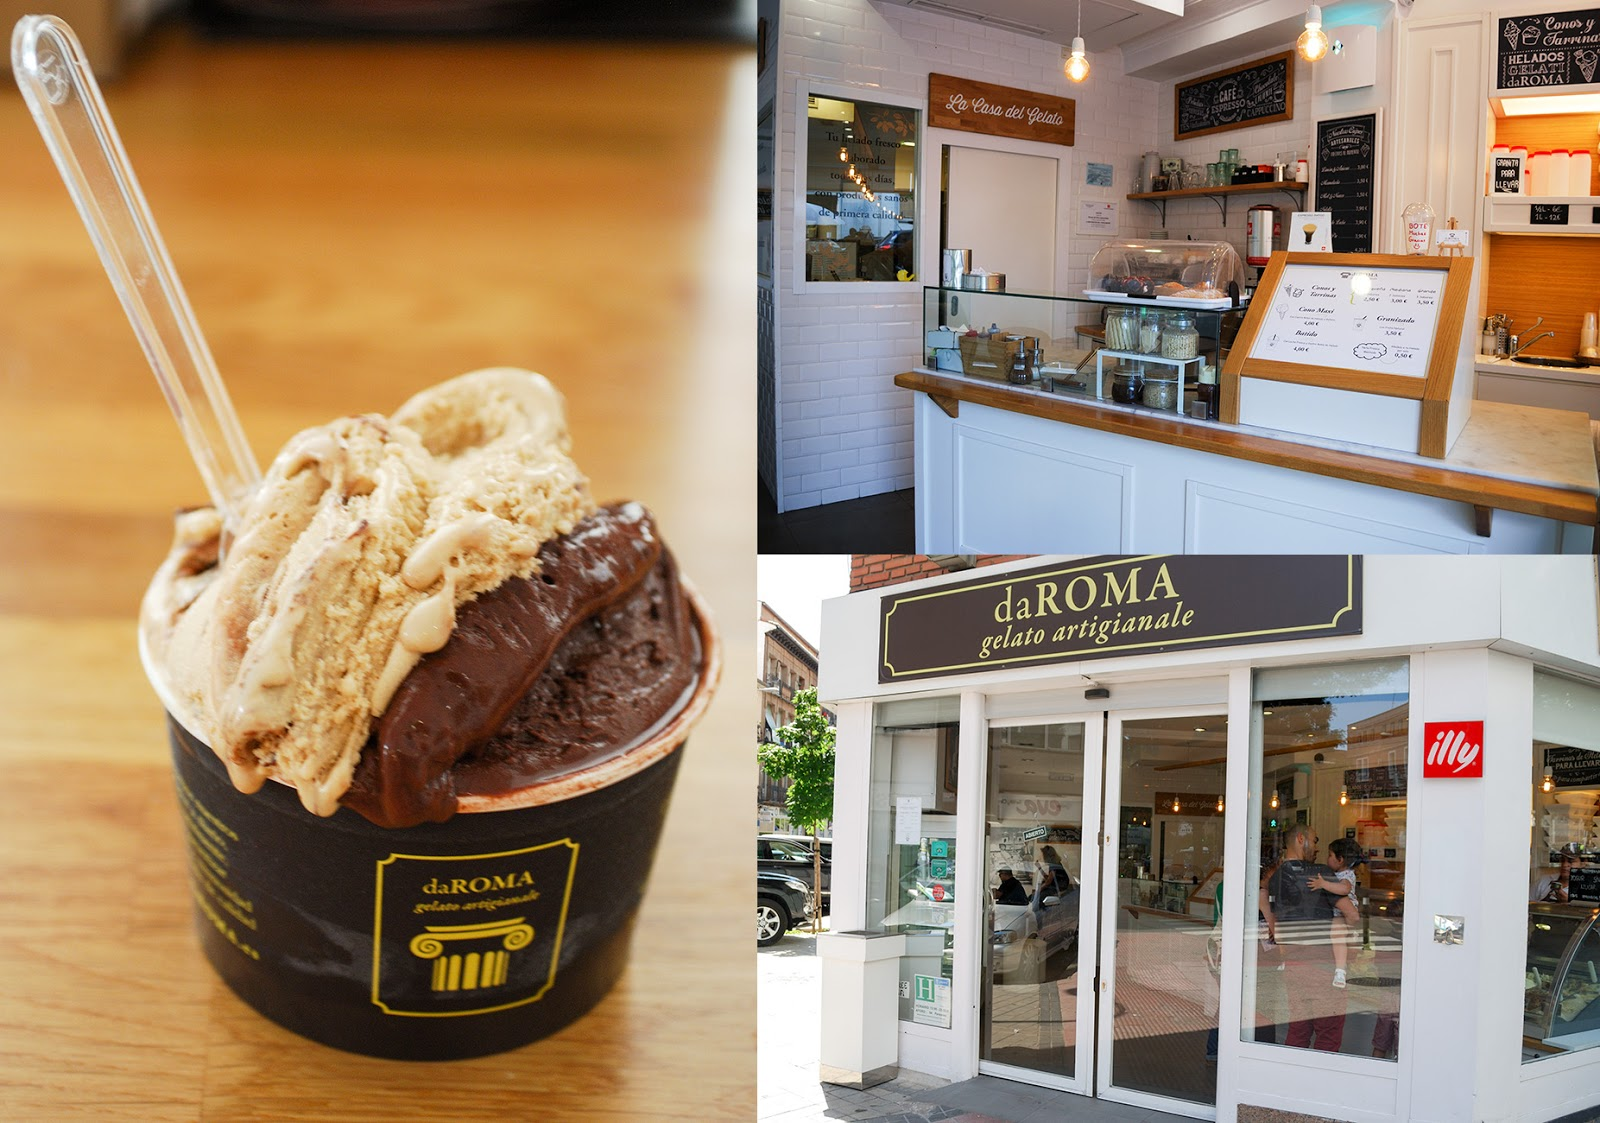 gelateria da roma italian madrid gelato food cuisine spain ice-cream